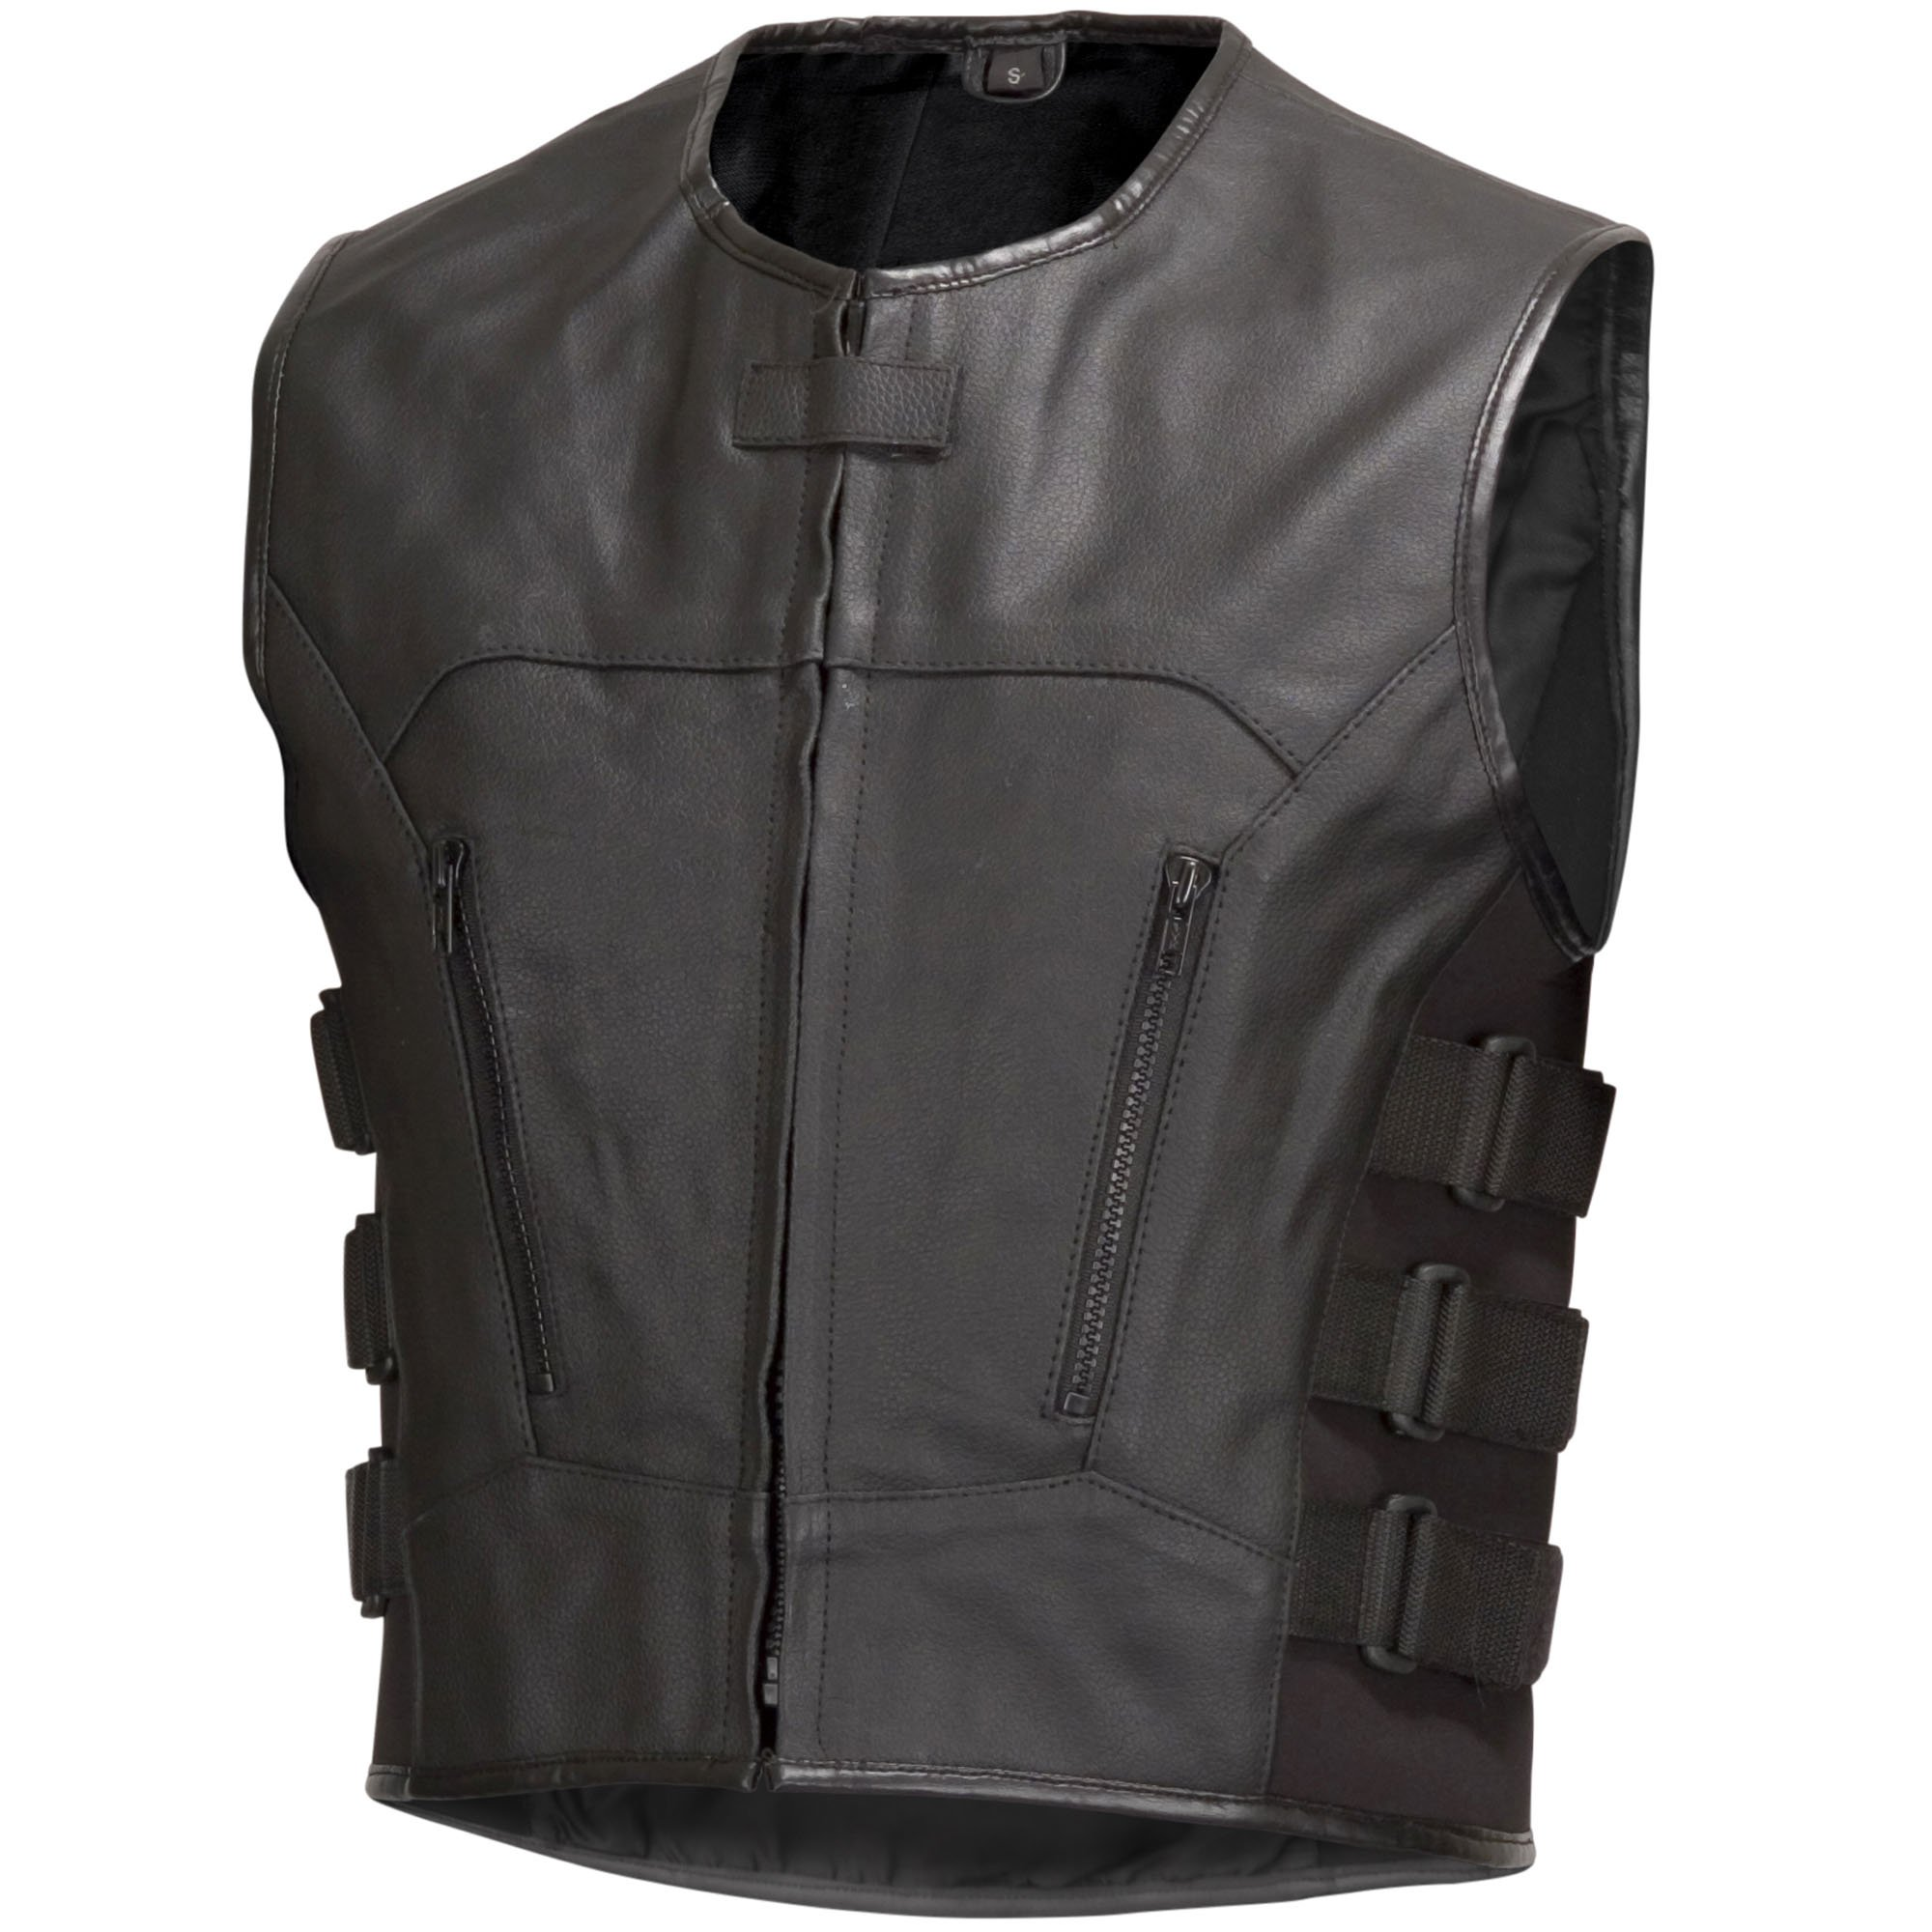 Men Premium Cowhide Leather Motorcycle Biker Bulletproof Style Vest Black (M)